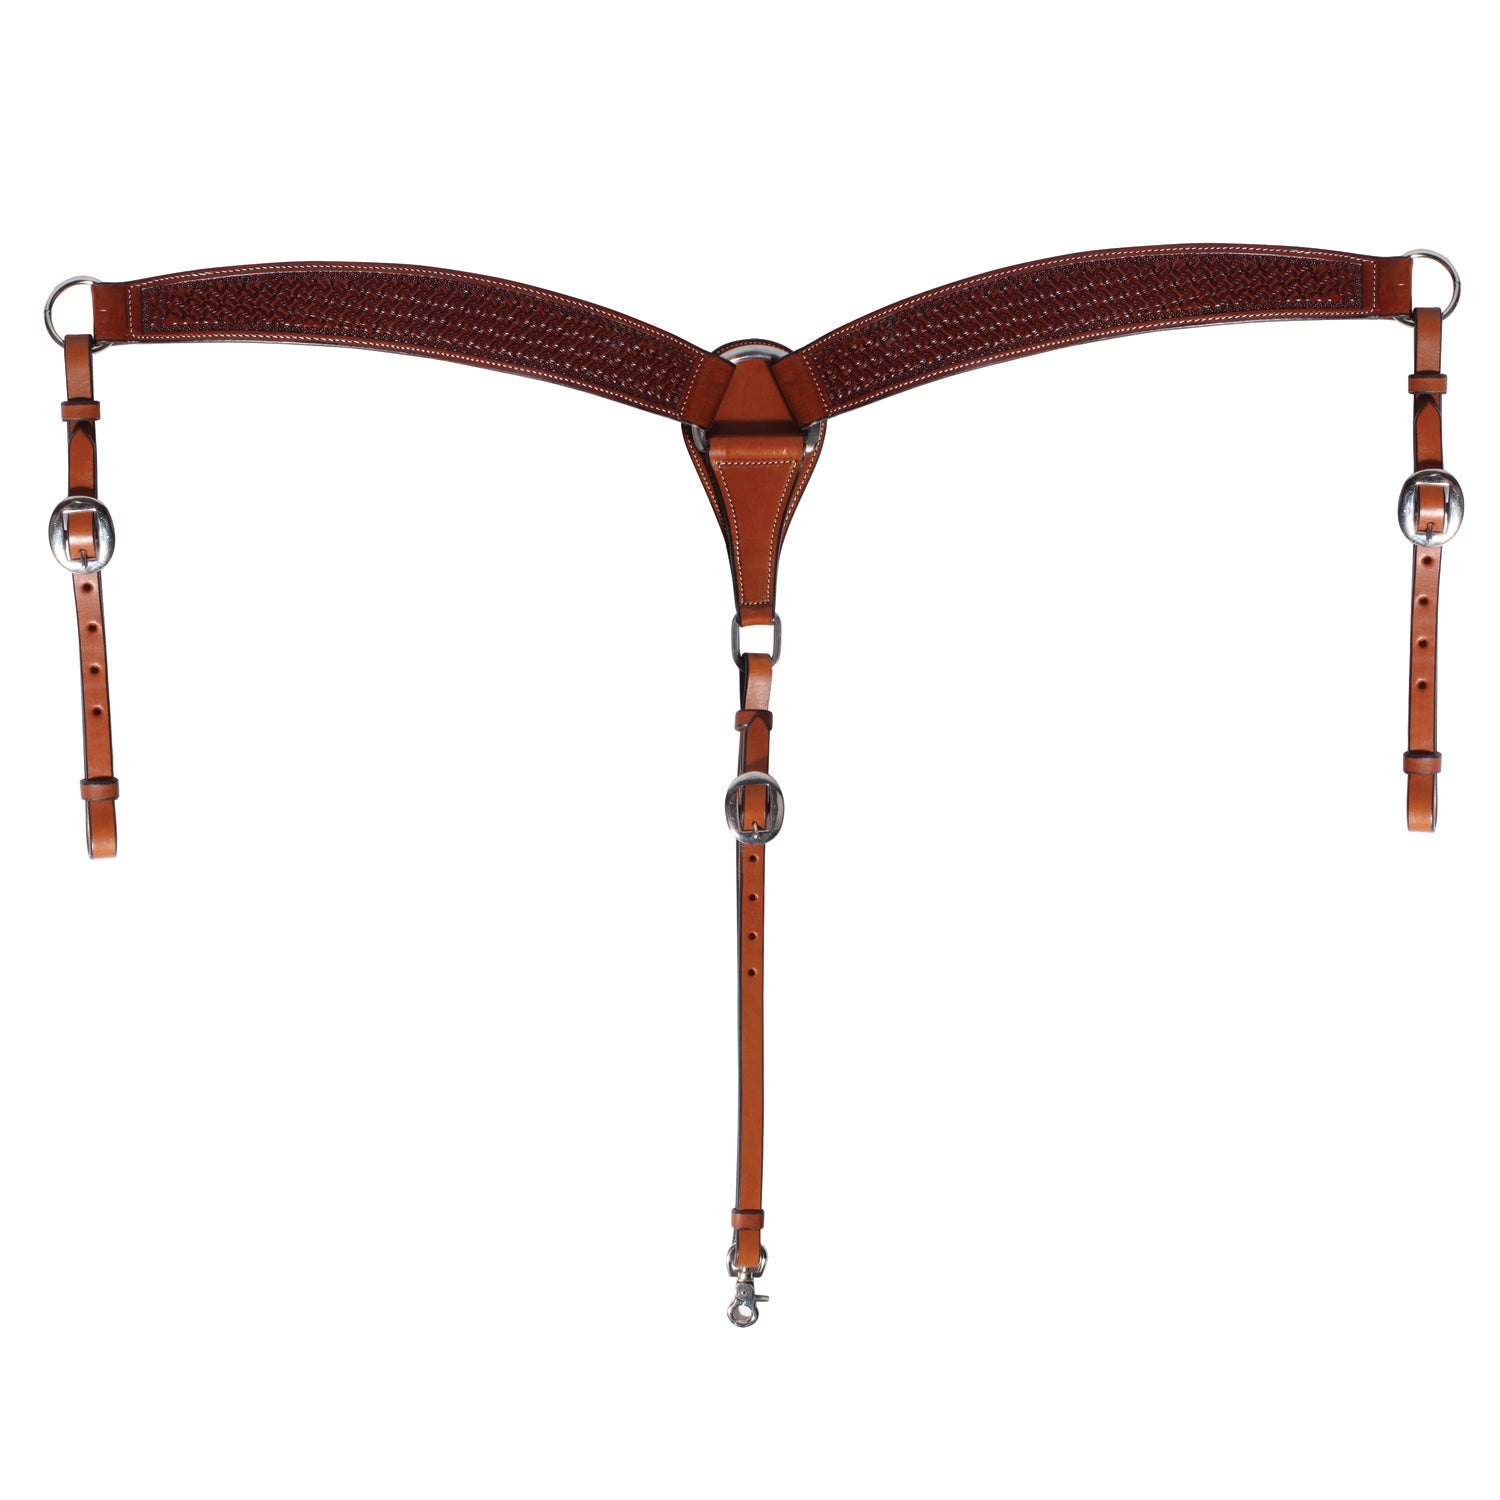 Professional's Choice  Breastcollar Windmill - Professional's Choice - Breeches.com